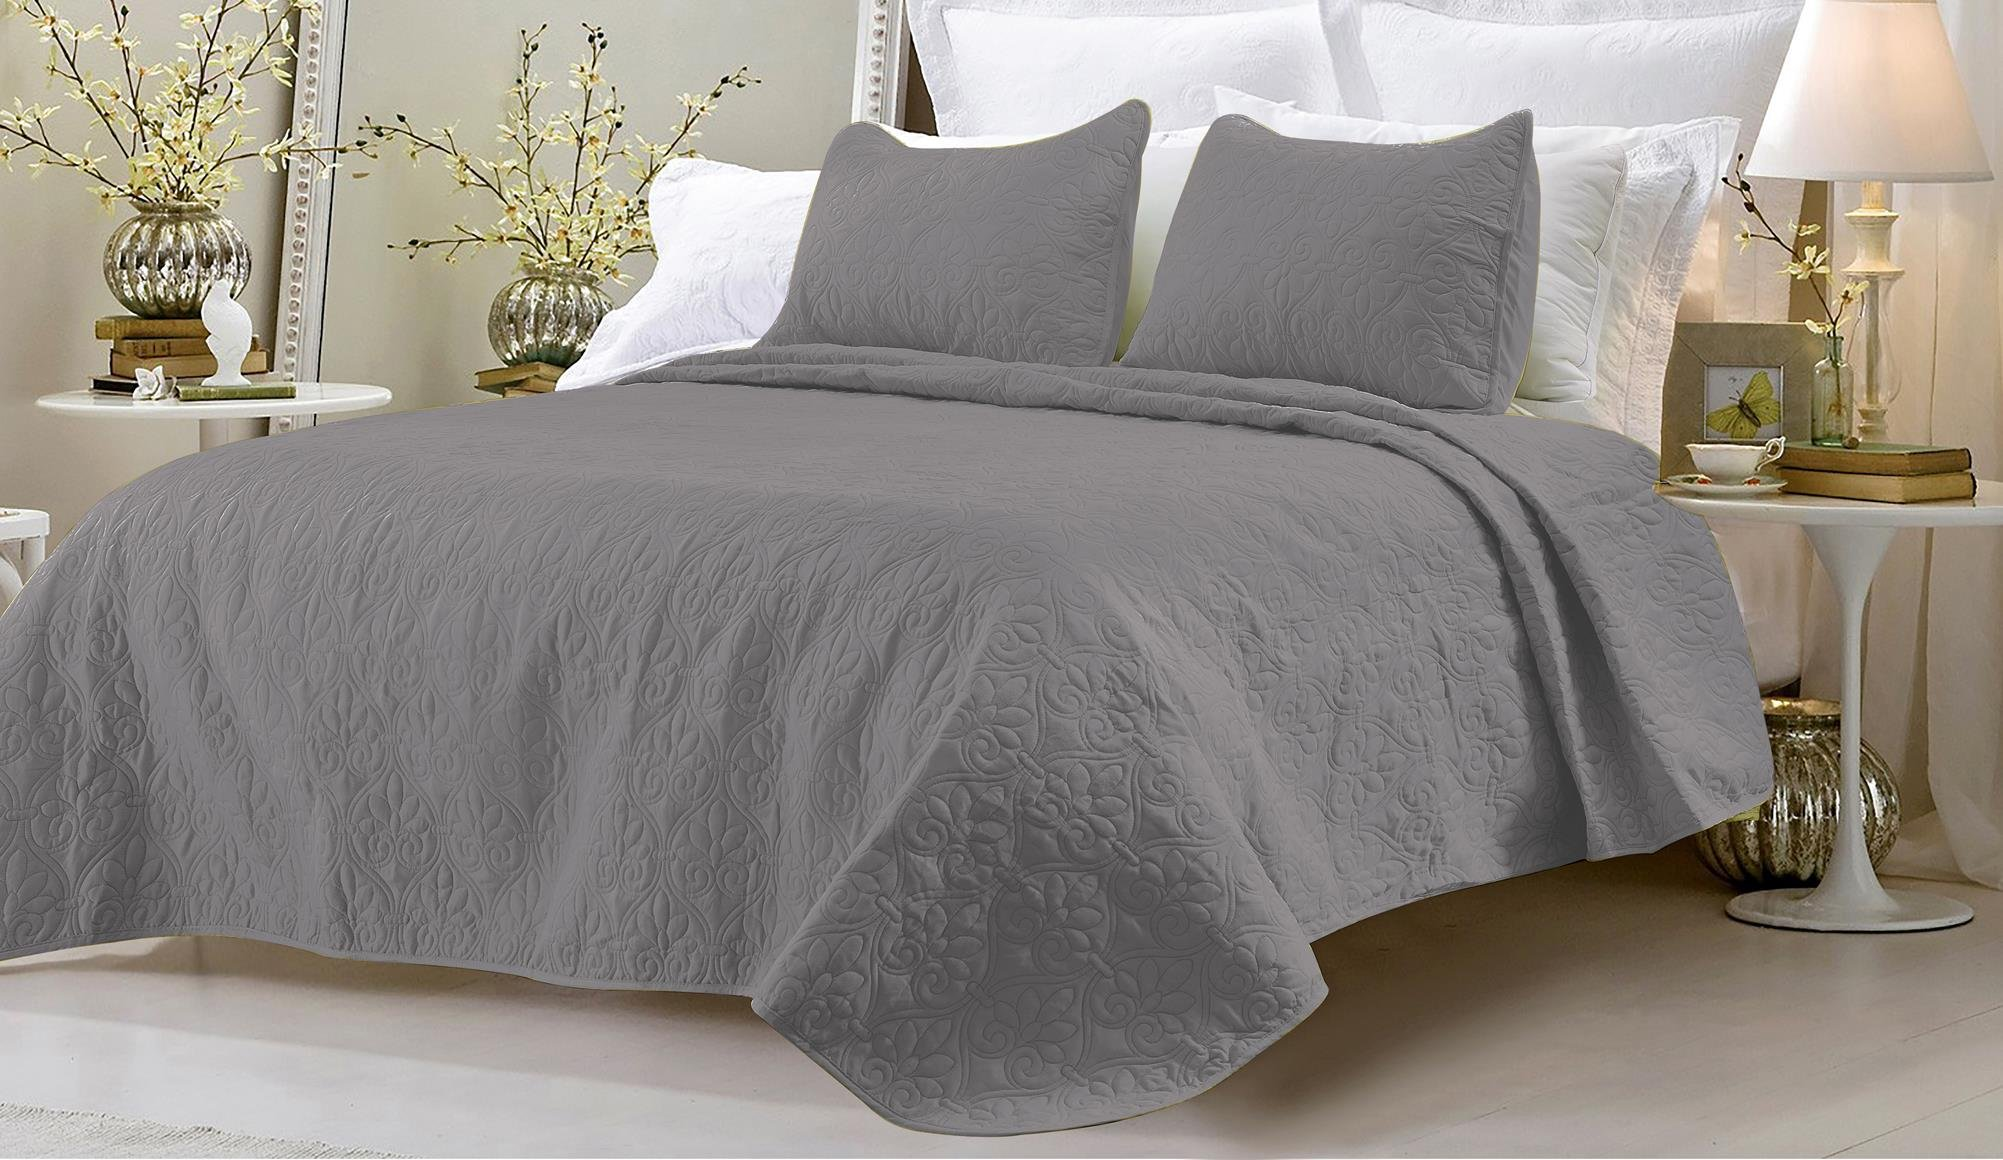 Oversized - 3 Piece 100% Cotton Quilted Coverlet Set - Gray - King/California King 104 x 96 Inches Wrinkle/Fade Resistant Light Weight Luxurious All Season Super Soft Machine Washable